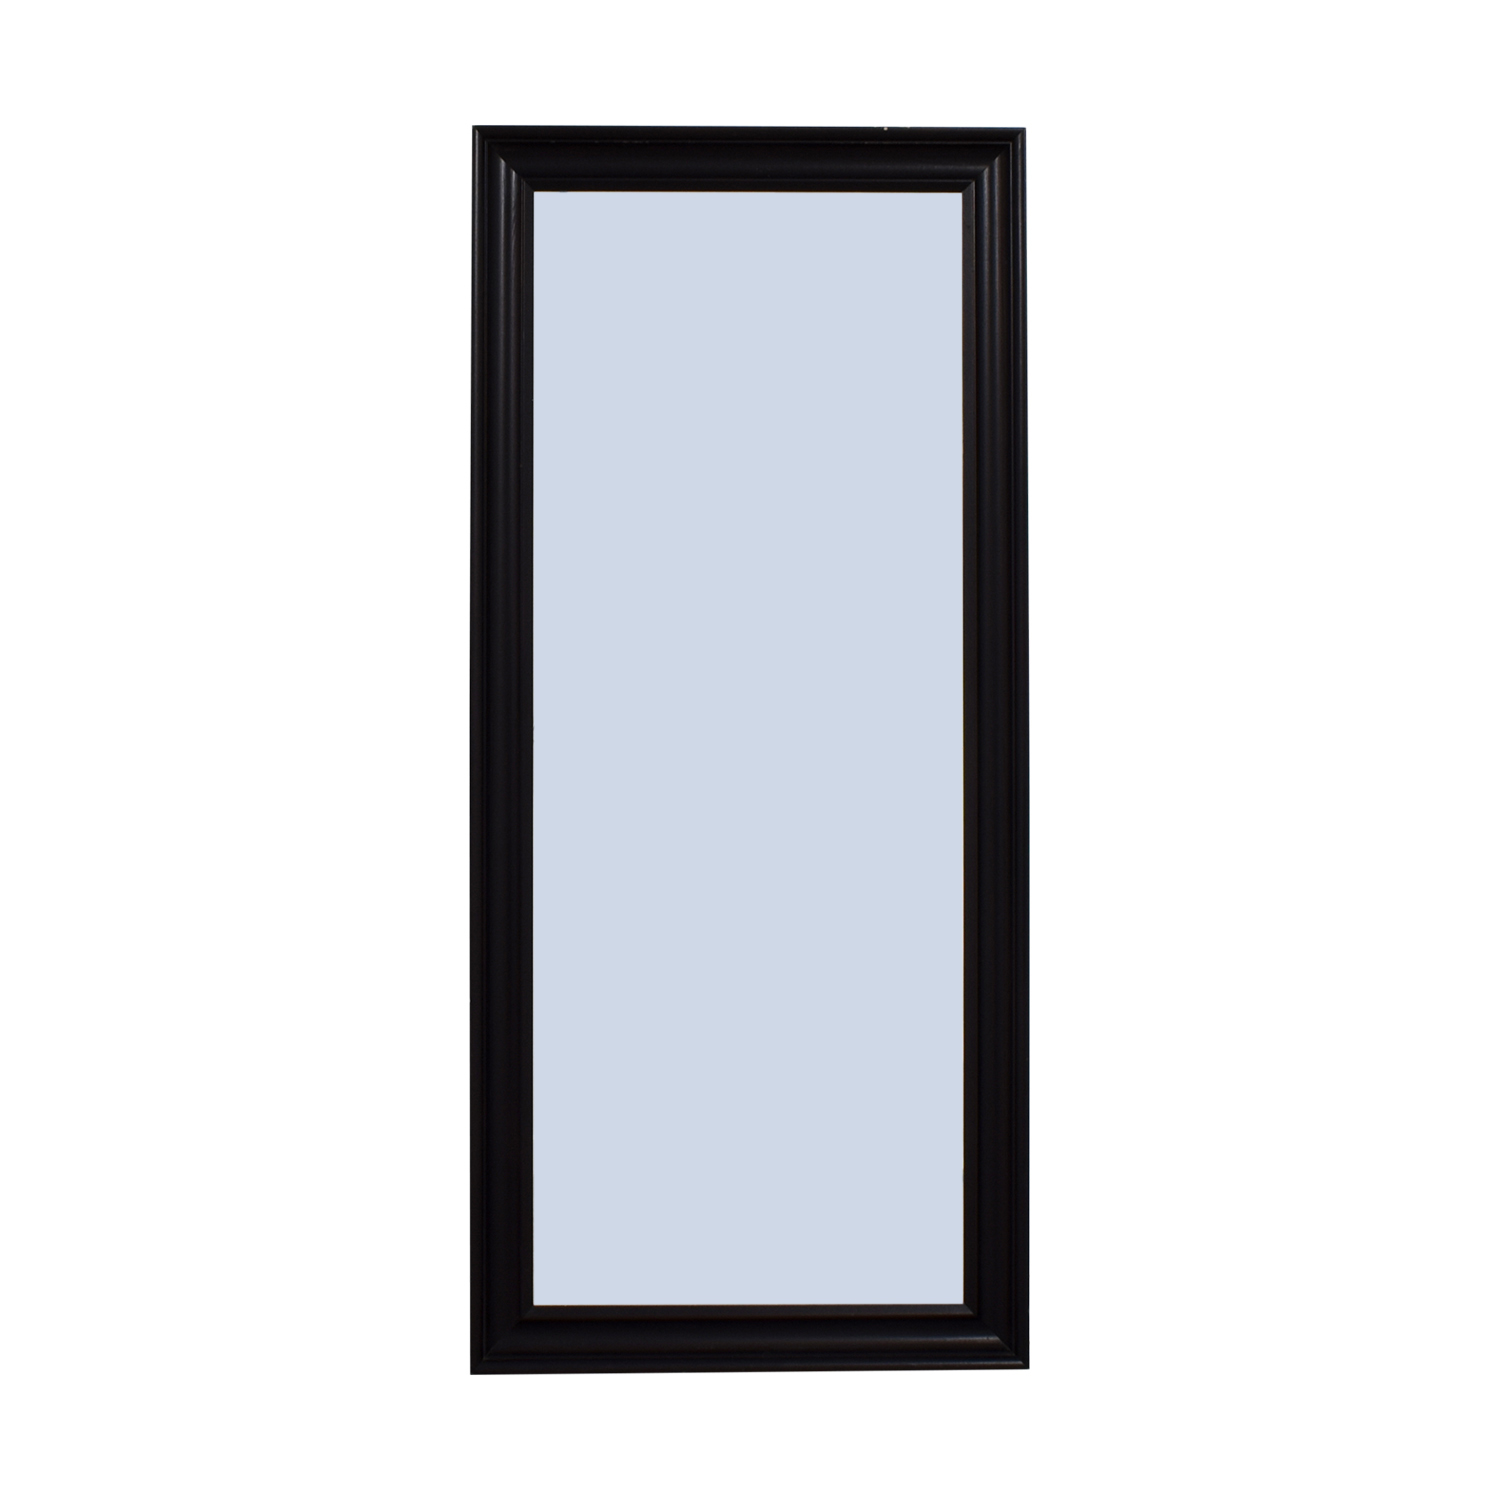 Crate & Barrel Crate & Barrel Black Wood Standing Mirror Mirrors